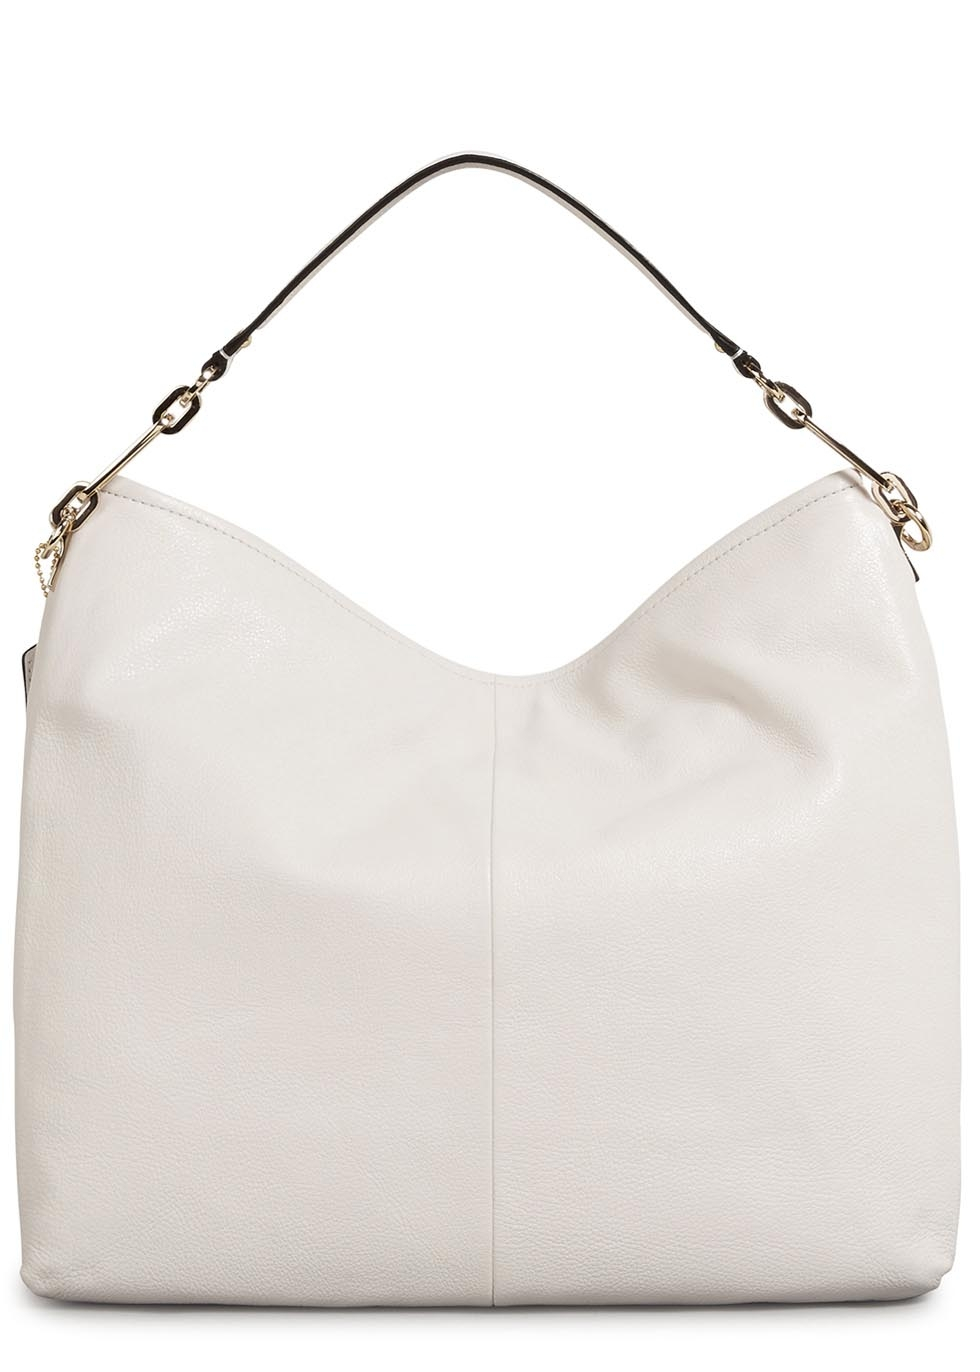 Coach Madison White Grained Leather Hobo Bag in White | Lyst